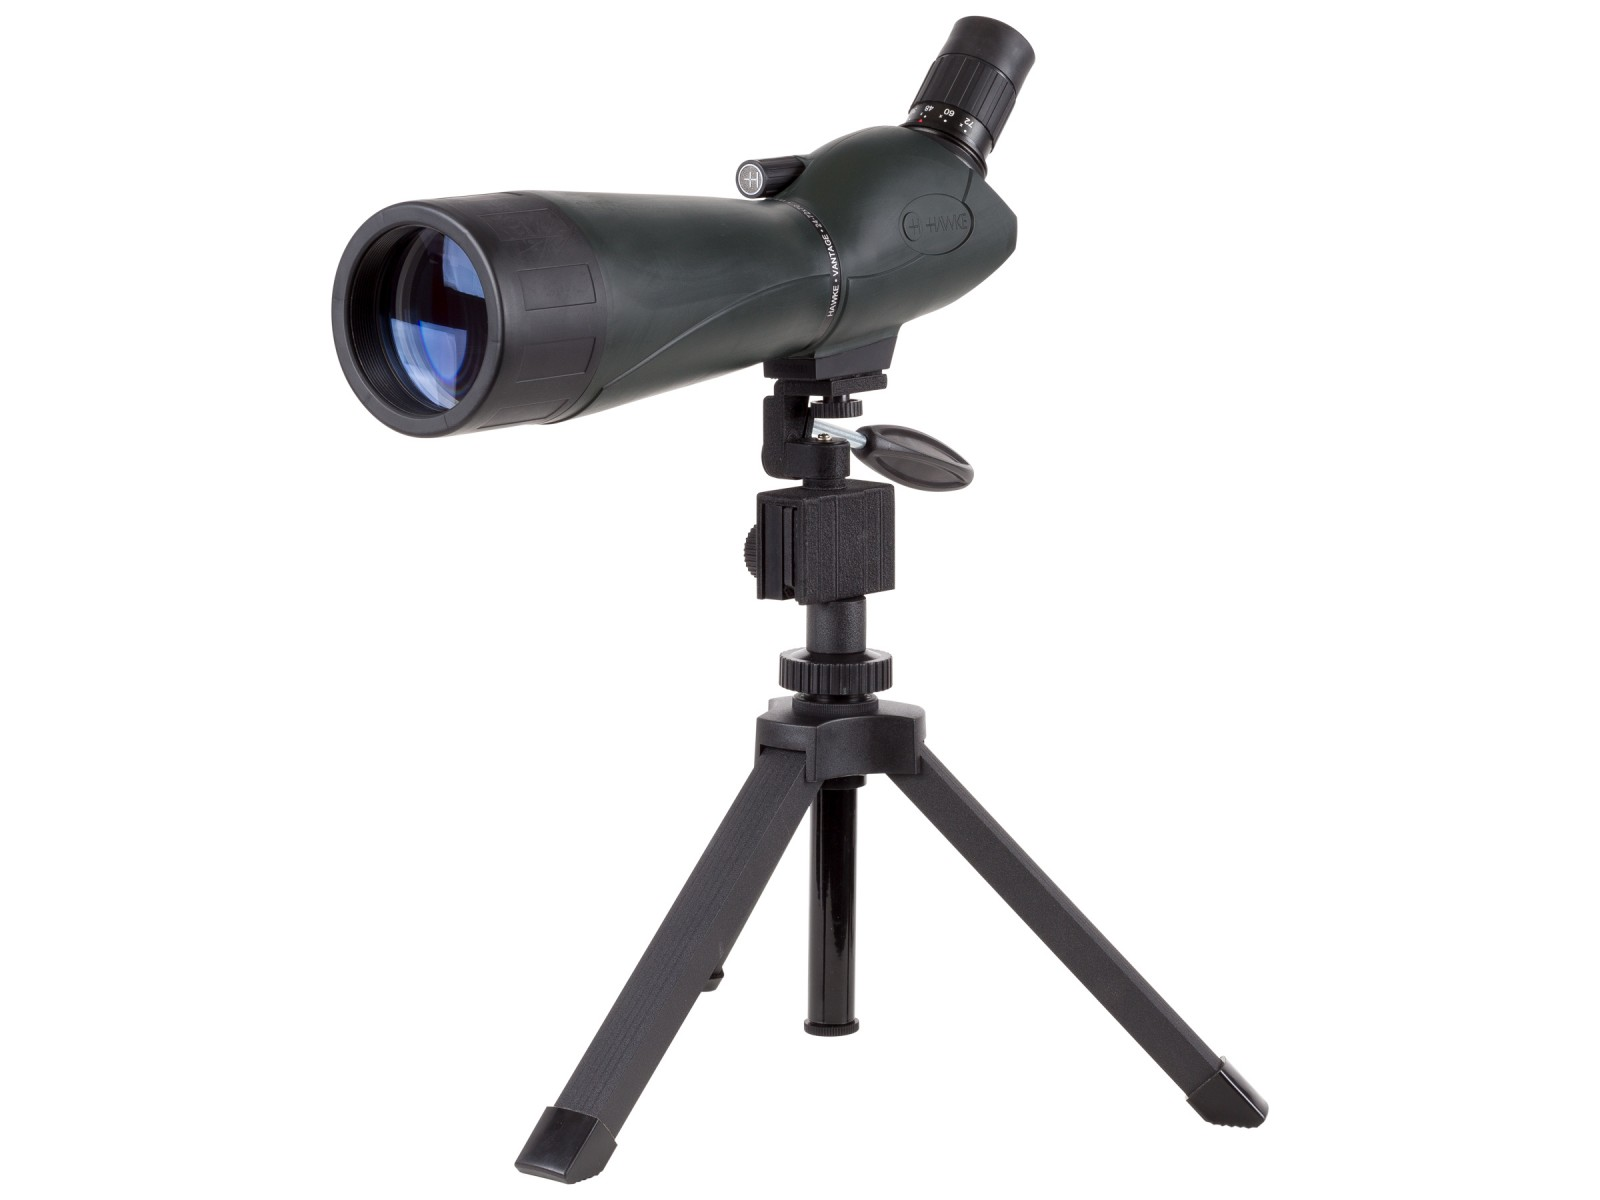 Hawke Sport Optics Vantage 24-72x70mm Angled Spotting Scope & Tripod